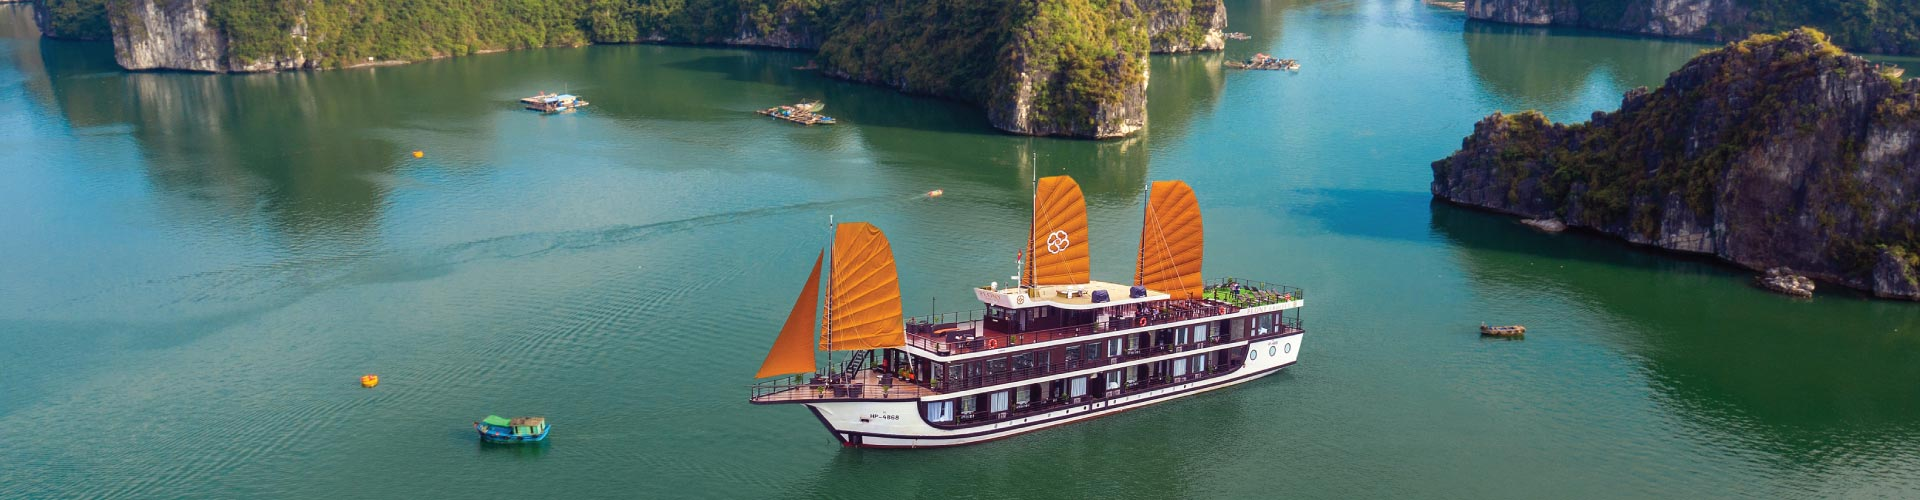 Tour - 4d3n Hanoi & Ha Long Bay (Overnight Cruise) - Vnhihblpk040b - R7